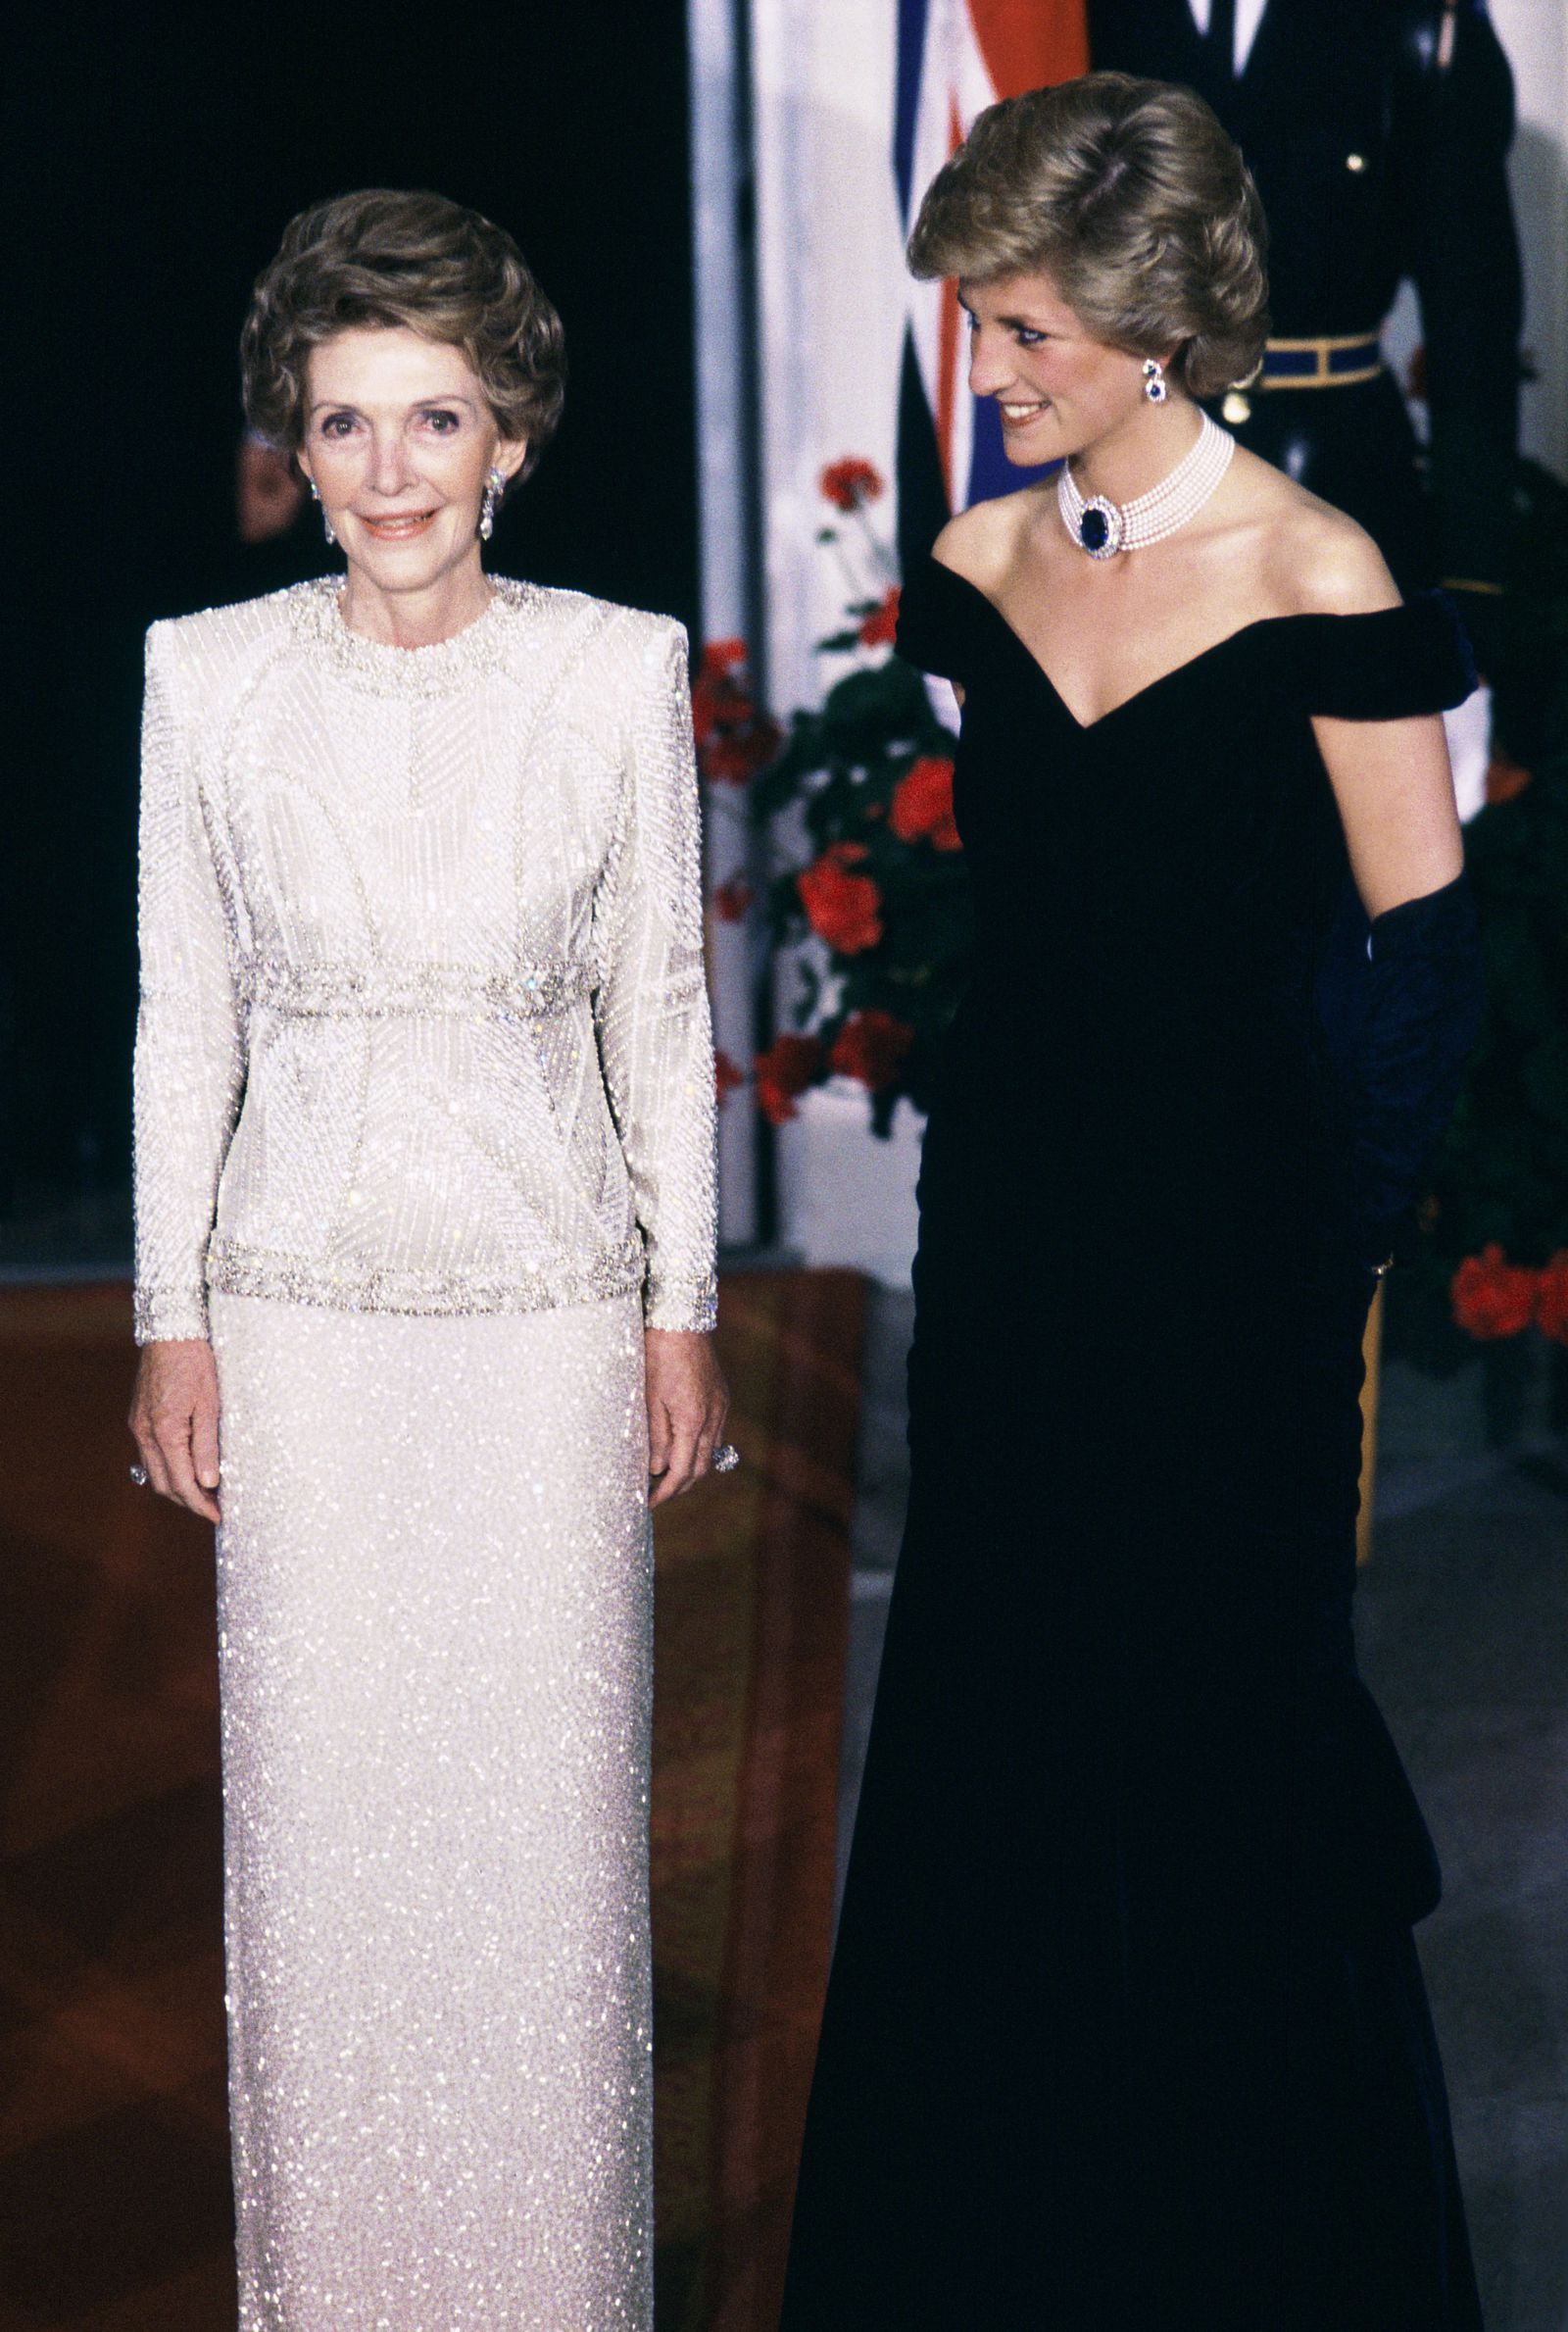 The 30 Most Controversial First Lady Fashion Moments in